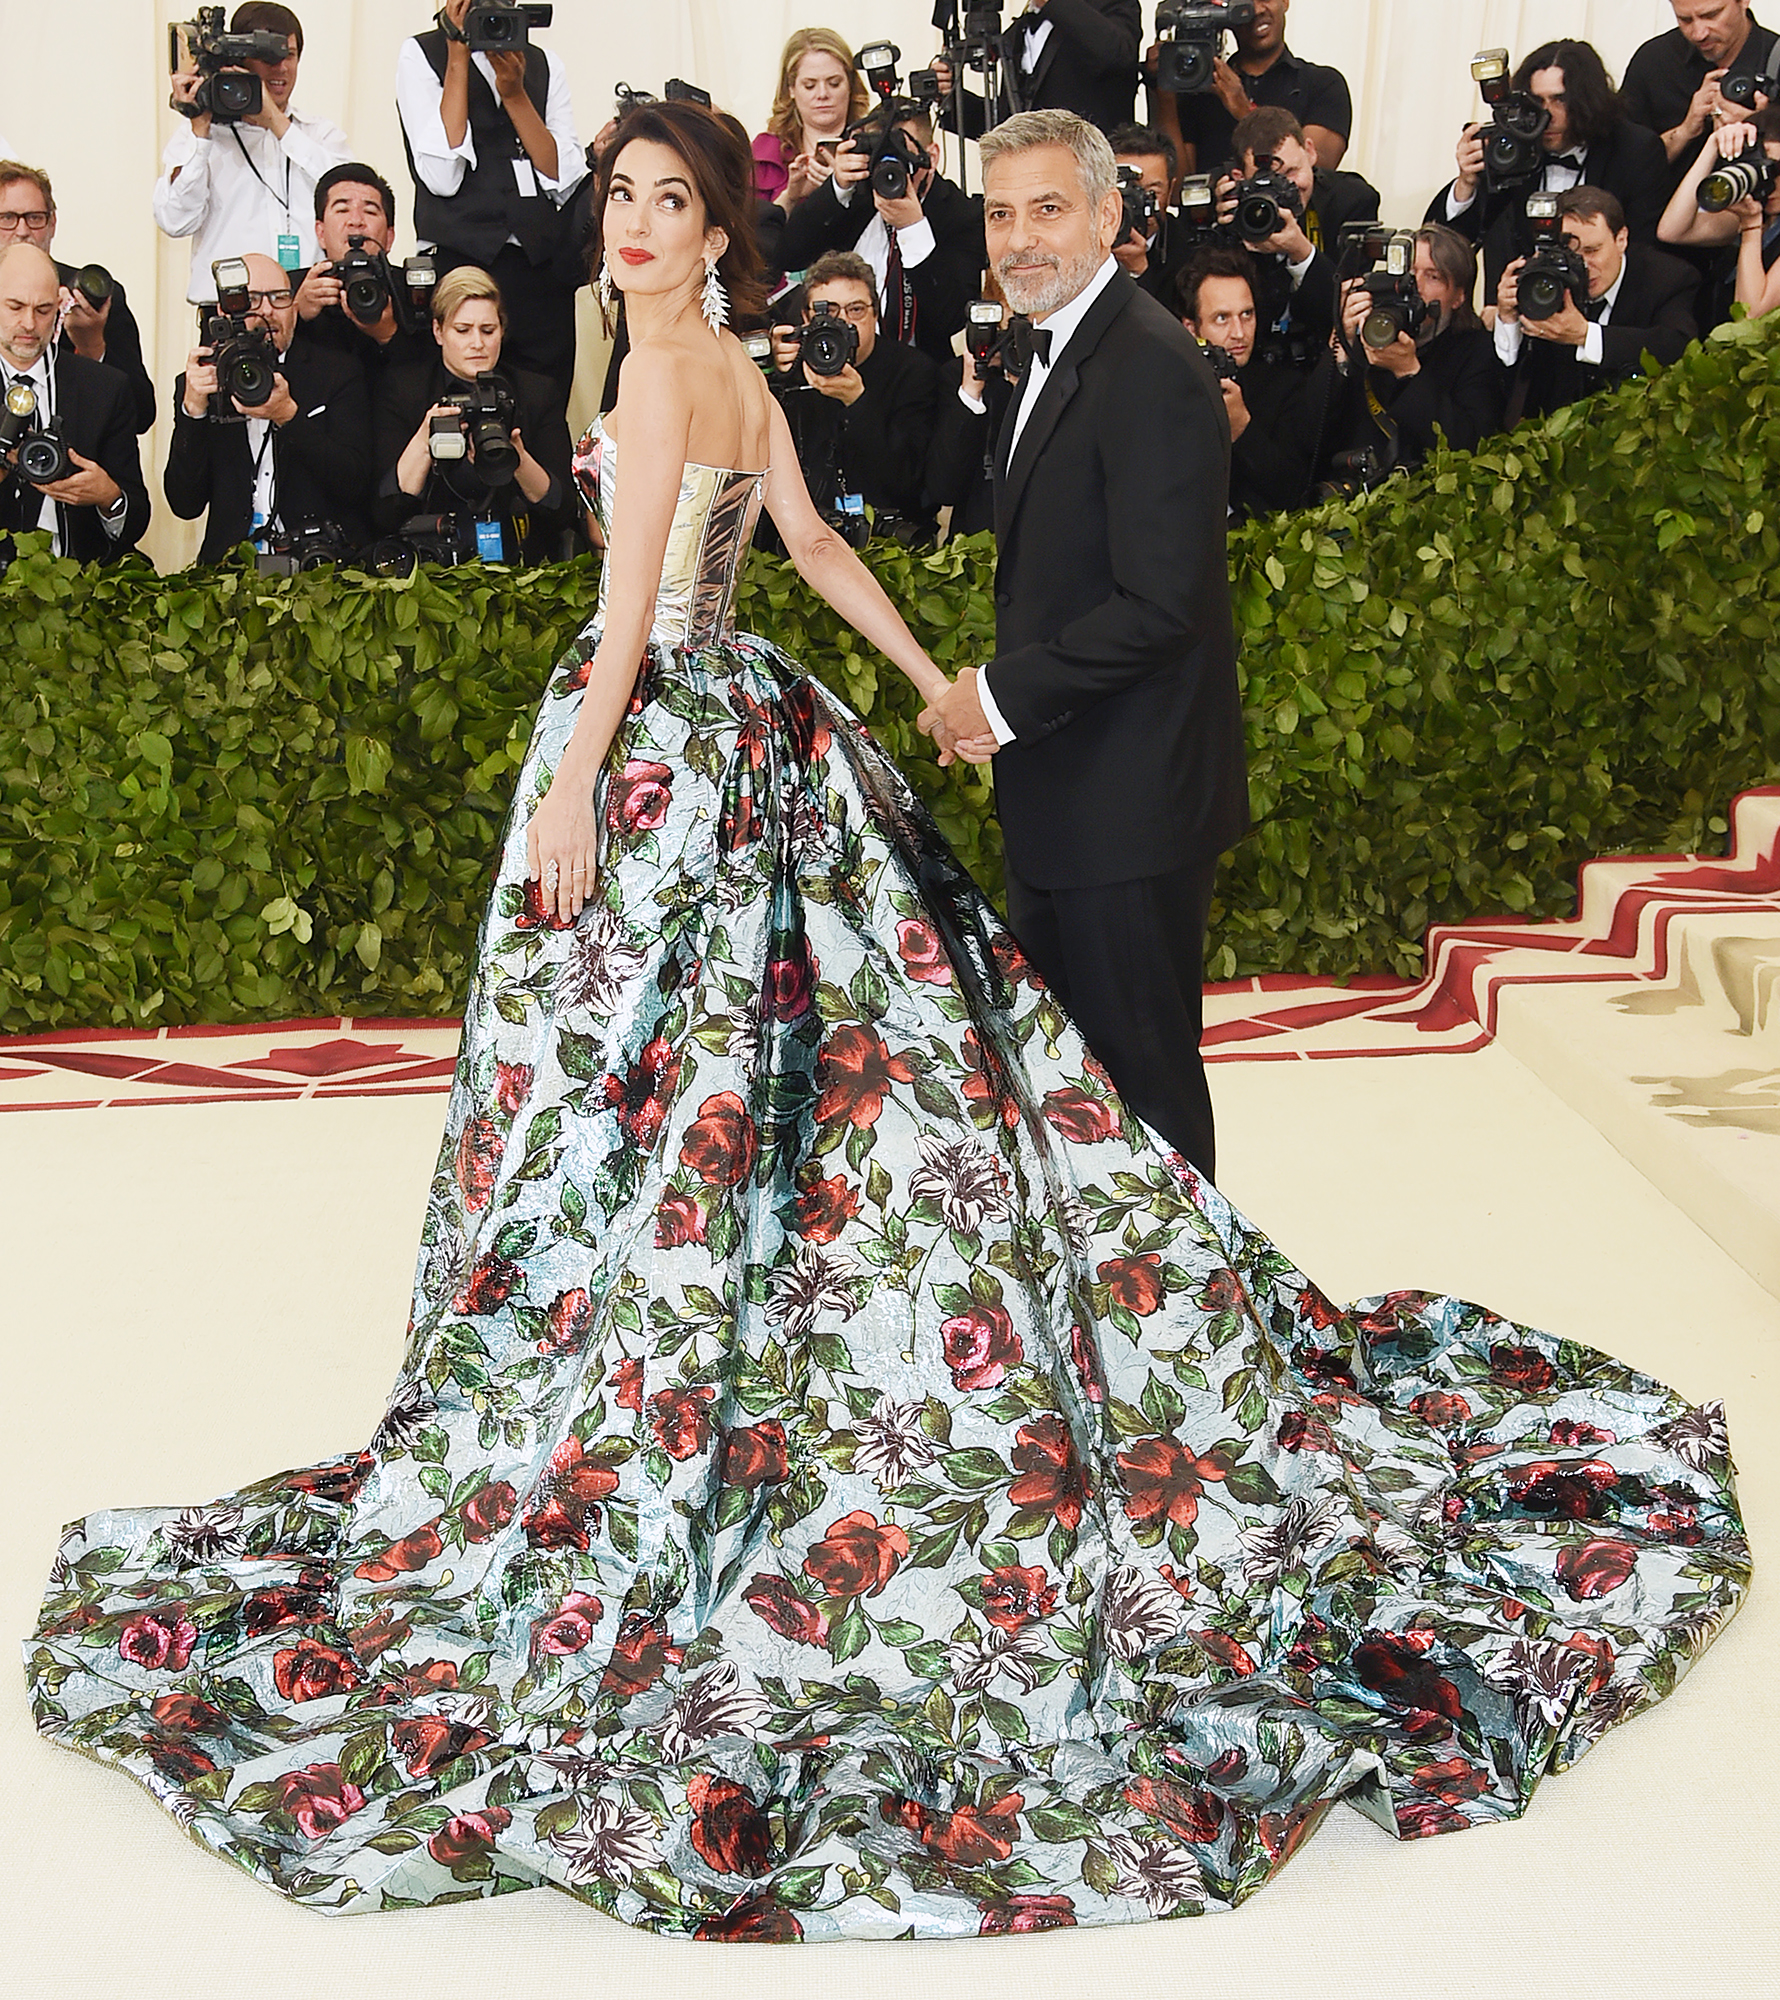 066e5cd6 George and Amal at Met Gala